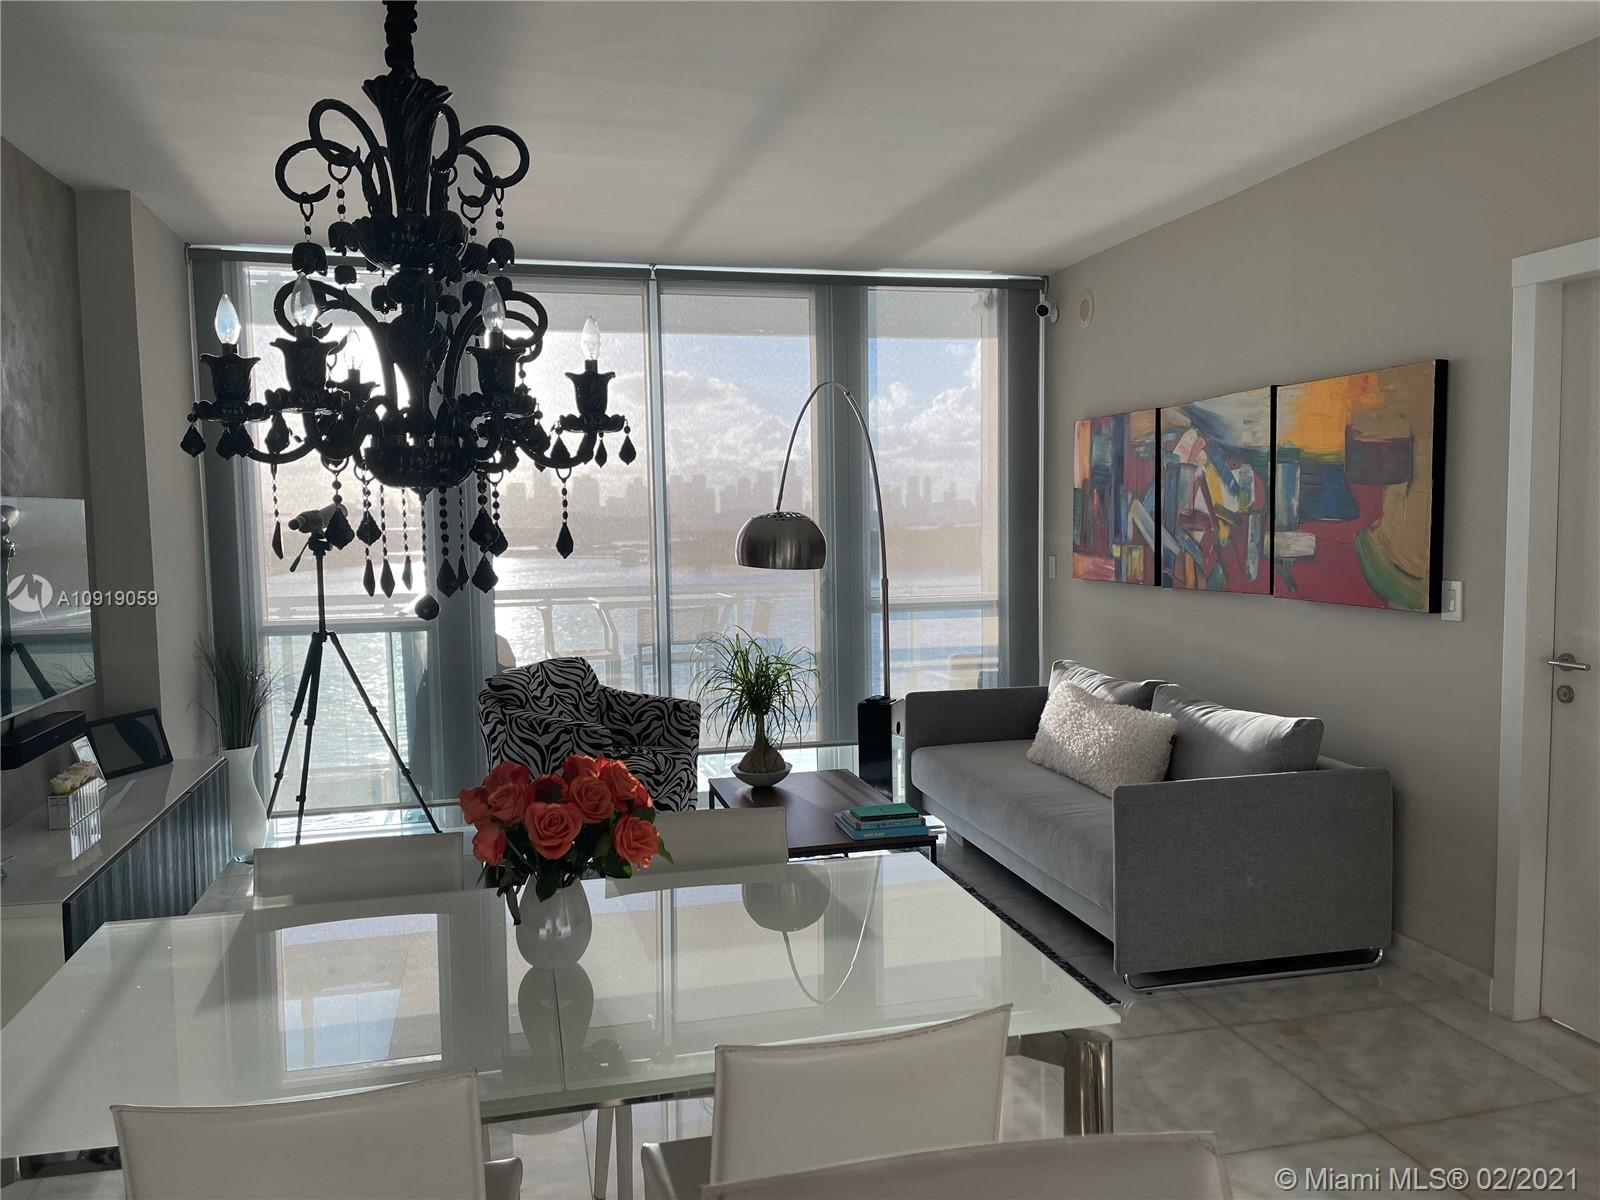 Beautiful and impeccable waterfront condo w/ the most breathtaking wide open bay/waterview and Miami Skyline view. White marble floors thru out and tastefully furnished. Move right in and enjoy the sunset every night. Best location! Walk to all the shopping, beaches and restaurants in the S of 5th street area.